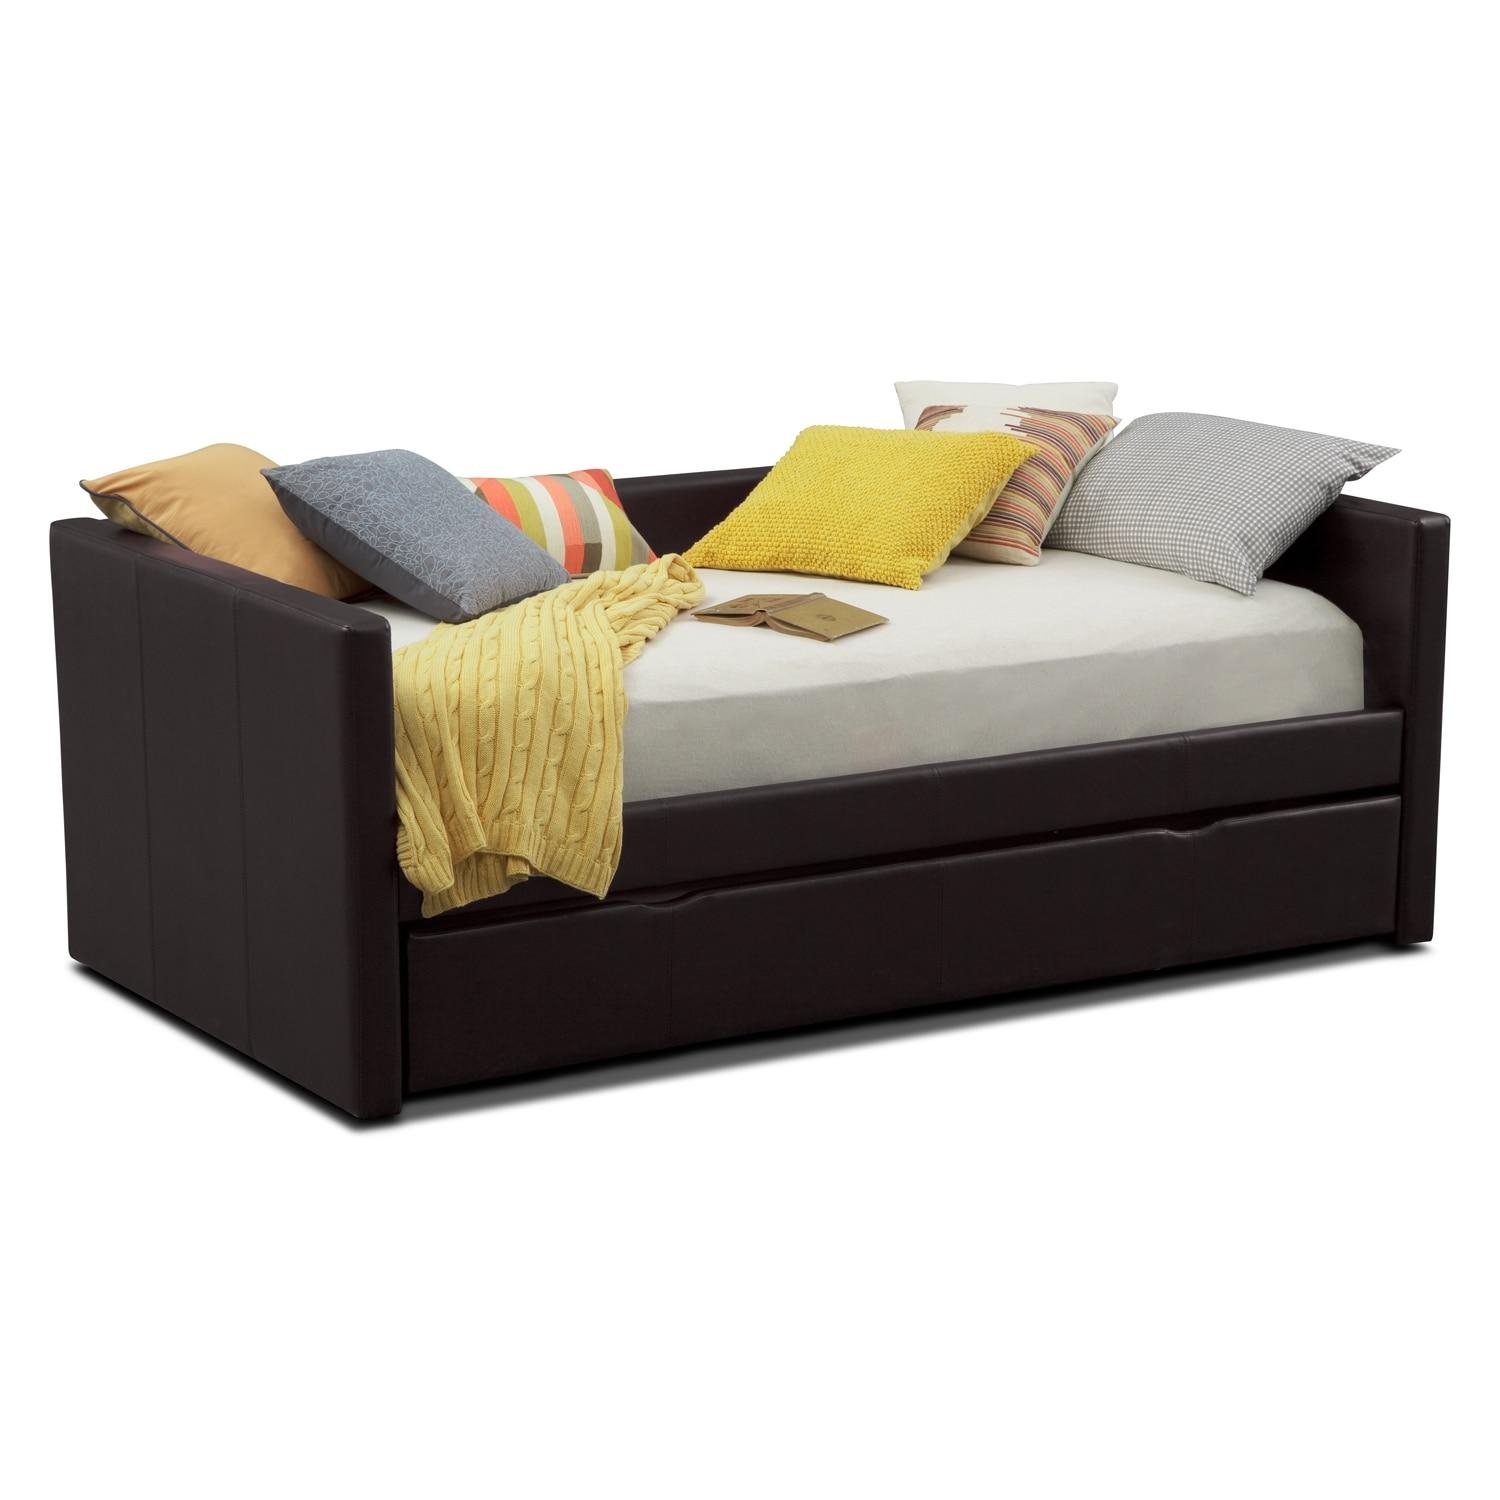 Daybeds & Trundle Beds | Bedroom Furniture | Value City Furniture In Sofas Daybed With Trundle (Image 5 of 20)